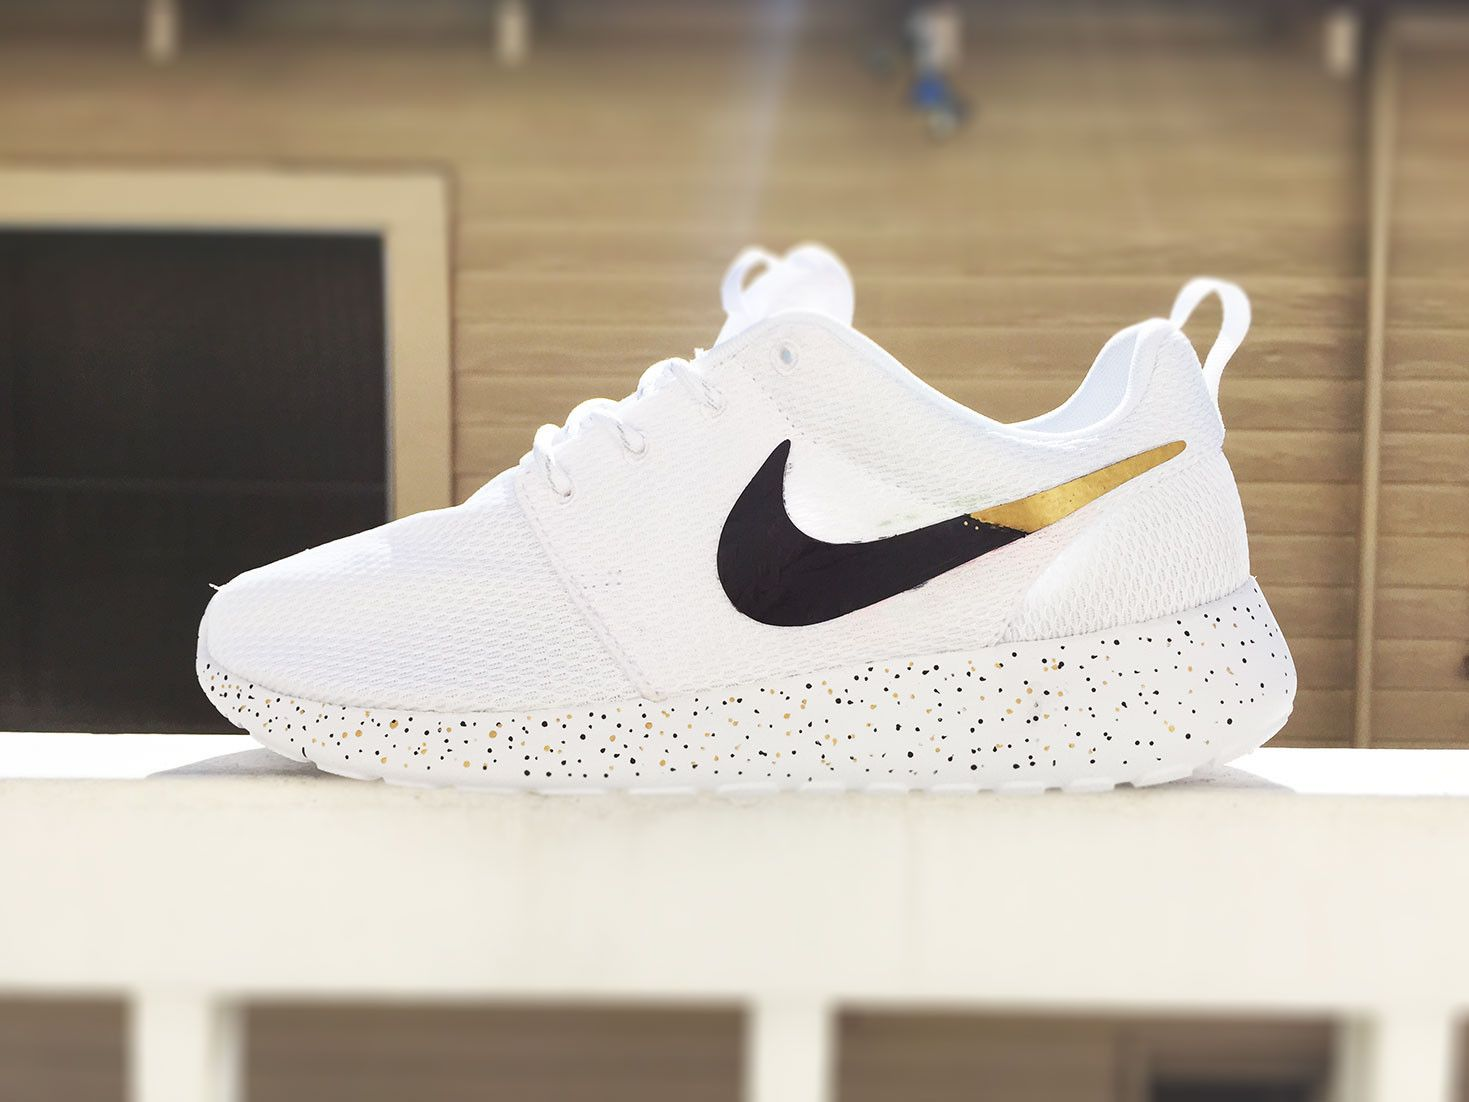 huge discount 22eb3 9350b Custom Nike Roshe Run sneakers for women, All white, Black and Gold,  Silver, specles, gold flakes, love, fashionable design